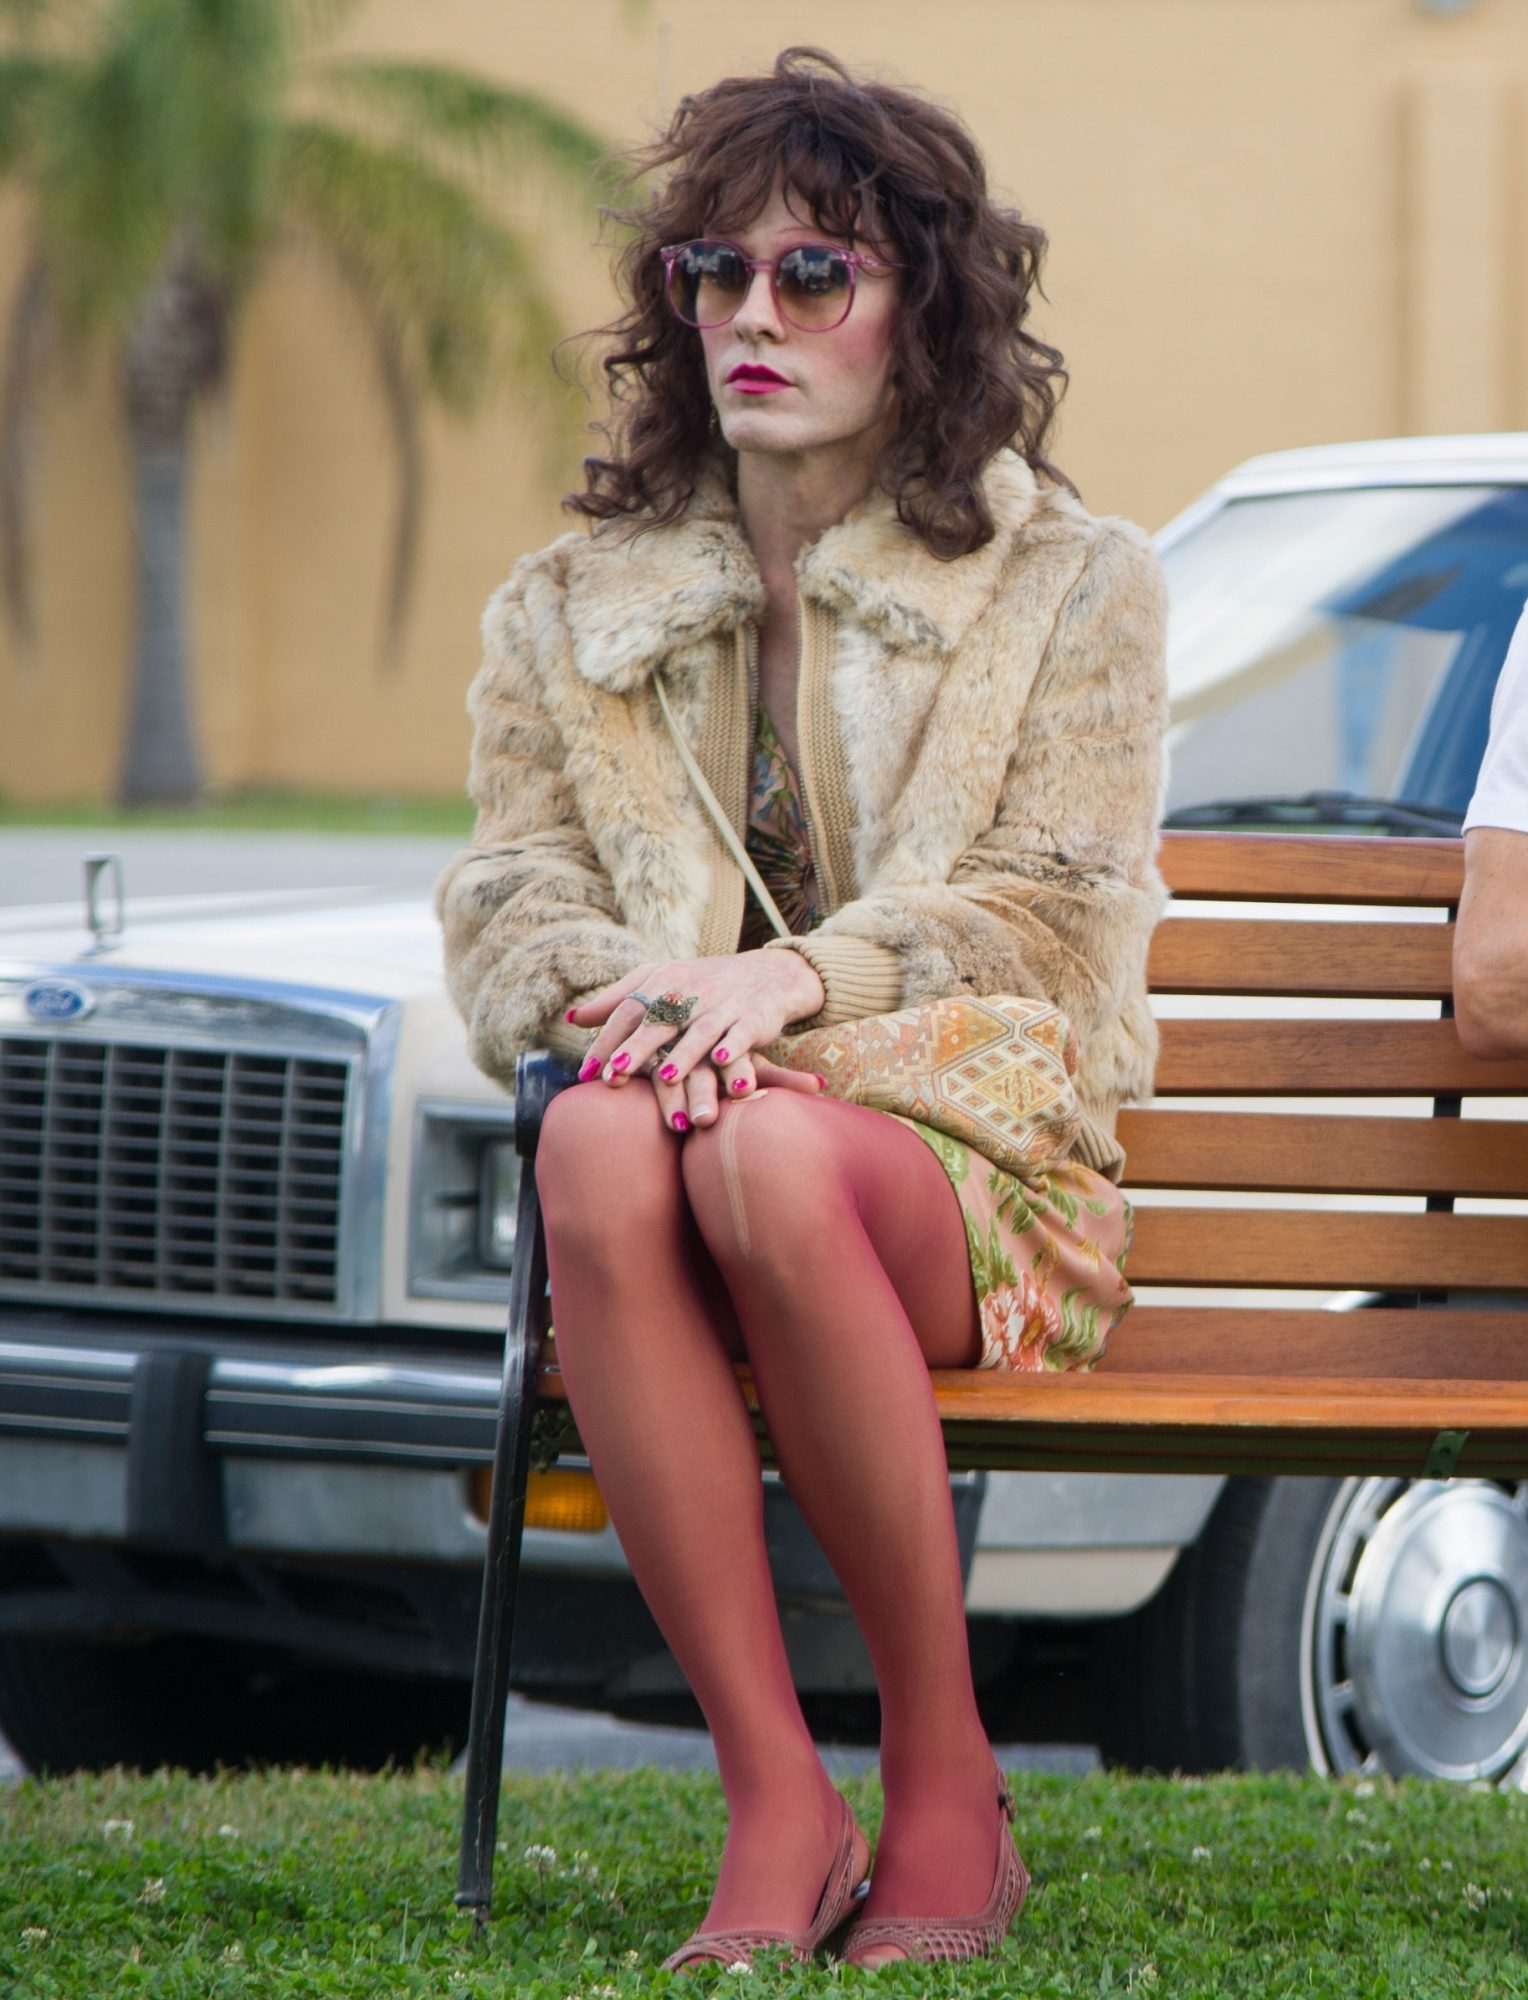 JARED LETO IN CHAPTER 27 AND DALLAS BUYERS CLUB